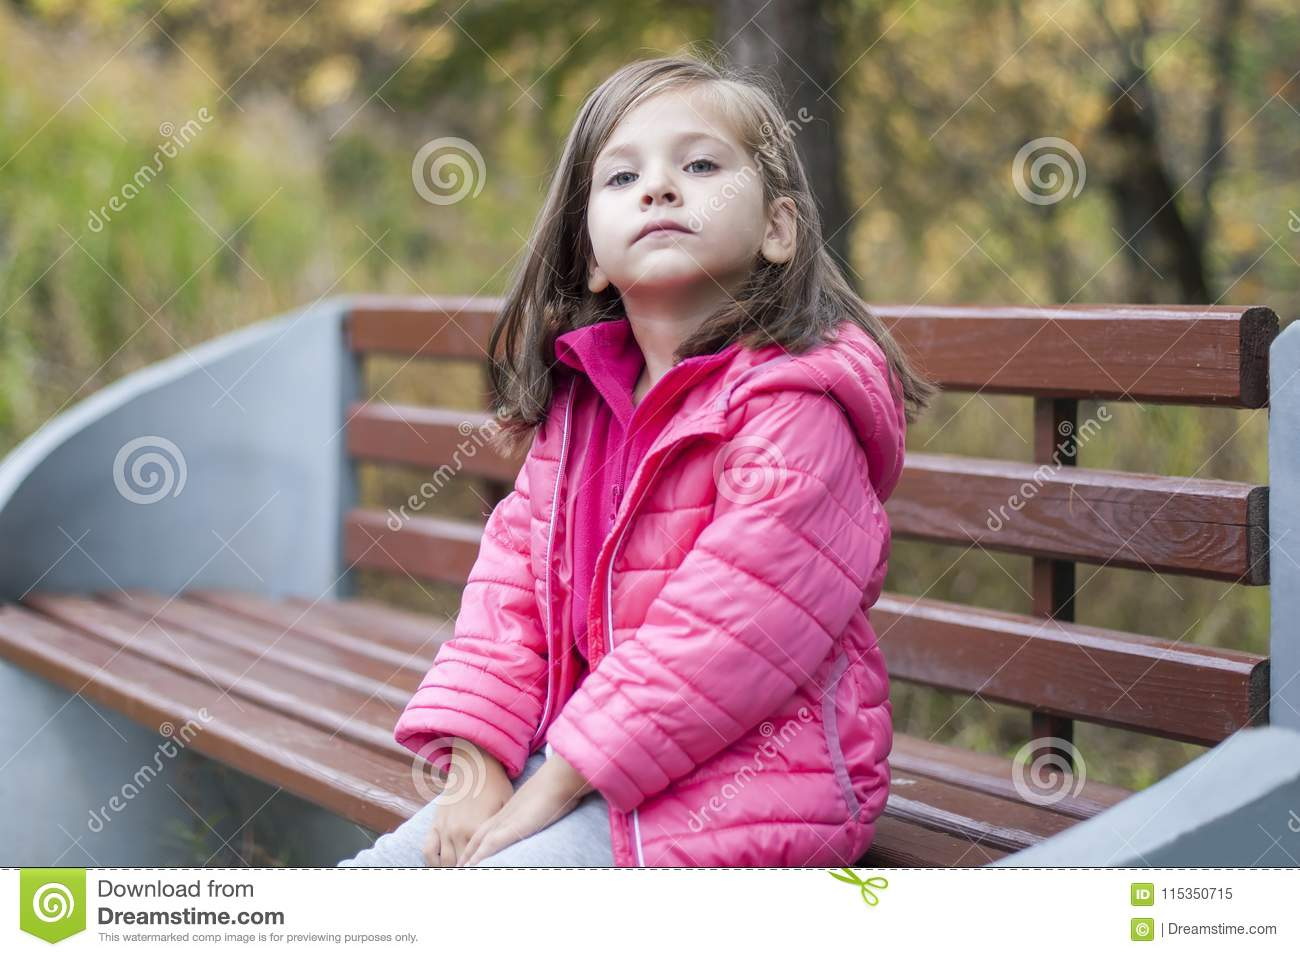 Little pretty girl in a pink coat sitting on a wood bench at the park in autumn. Emotional portrait